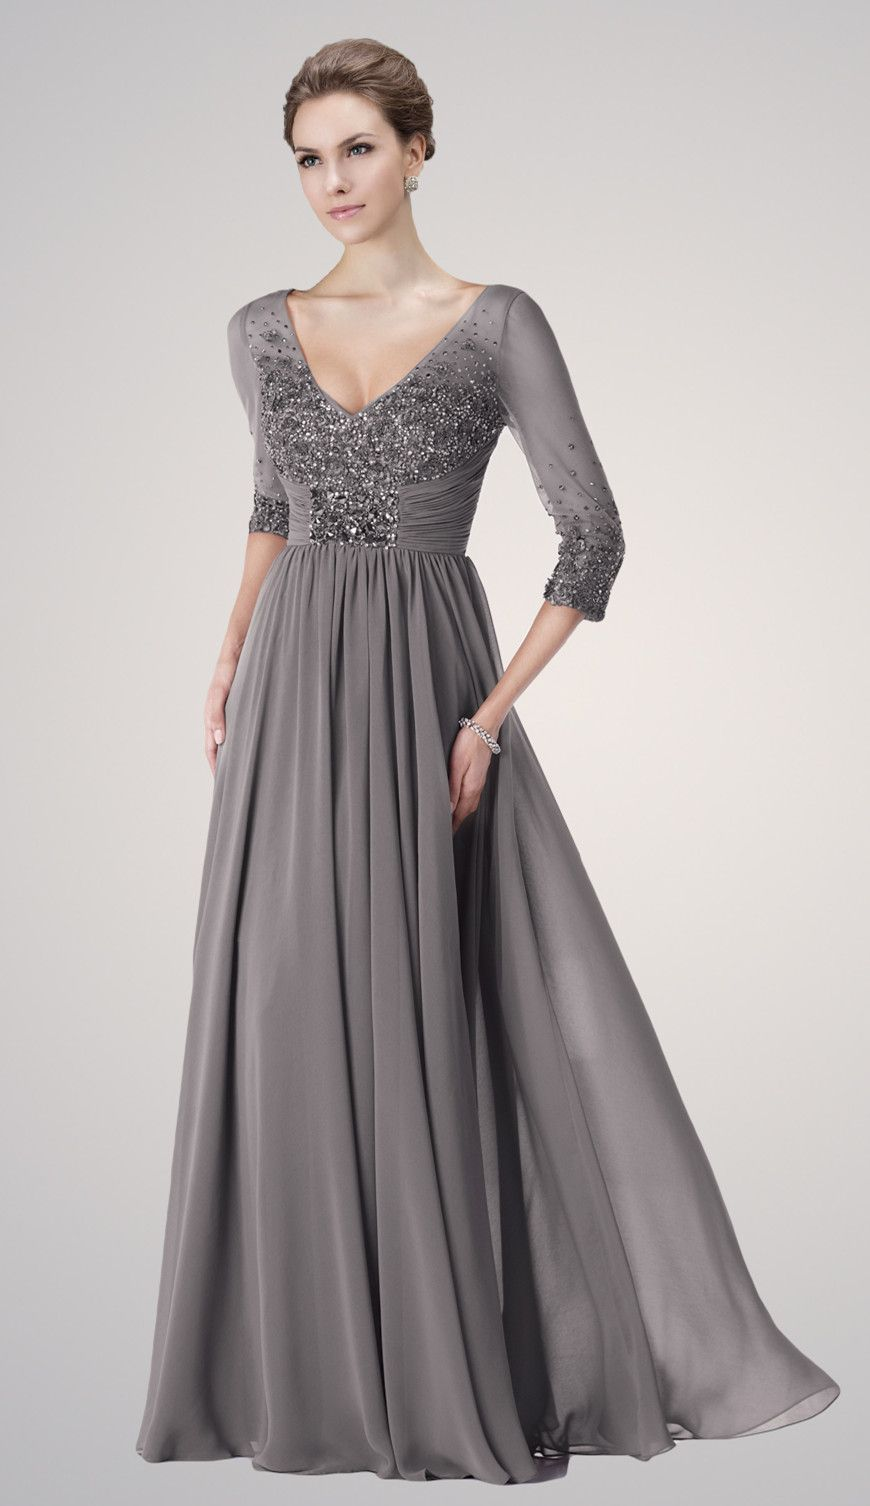 Mother Of The Bride Dresses Wedding Party Dresses Wedding Dresses Prom Dresses Ev Mother Of The Bride Dresses Long Mother Of Groom Dresses Long Party Gowns [ 1506 x 870 Pixel ]